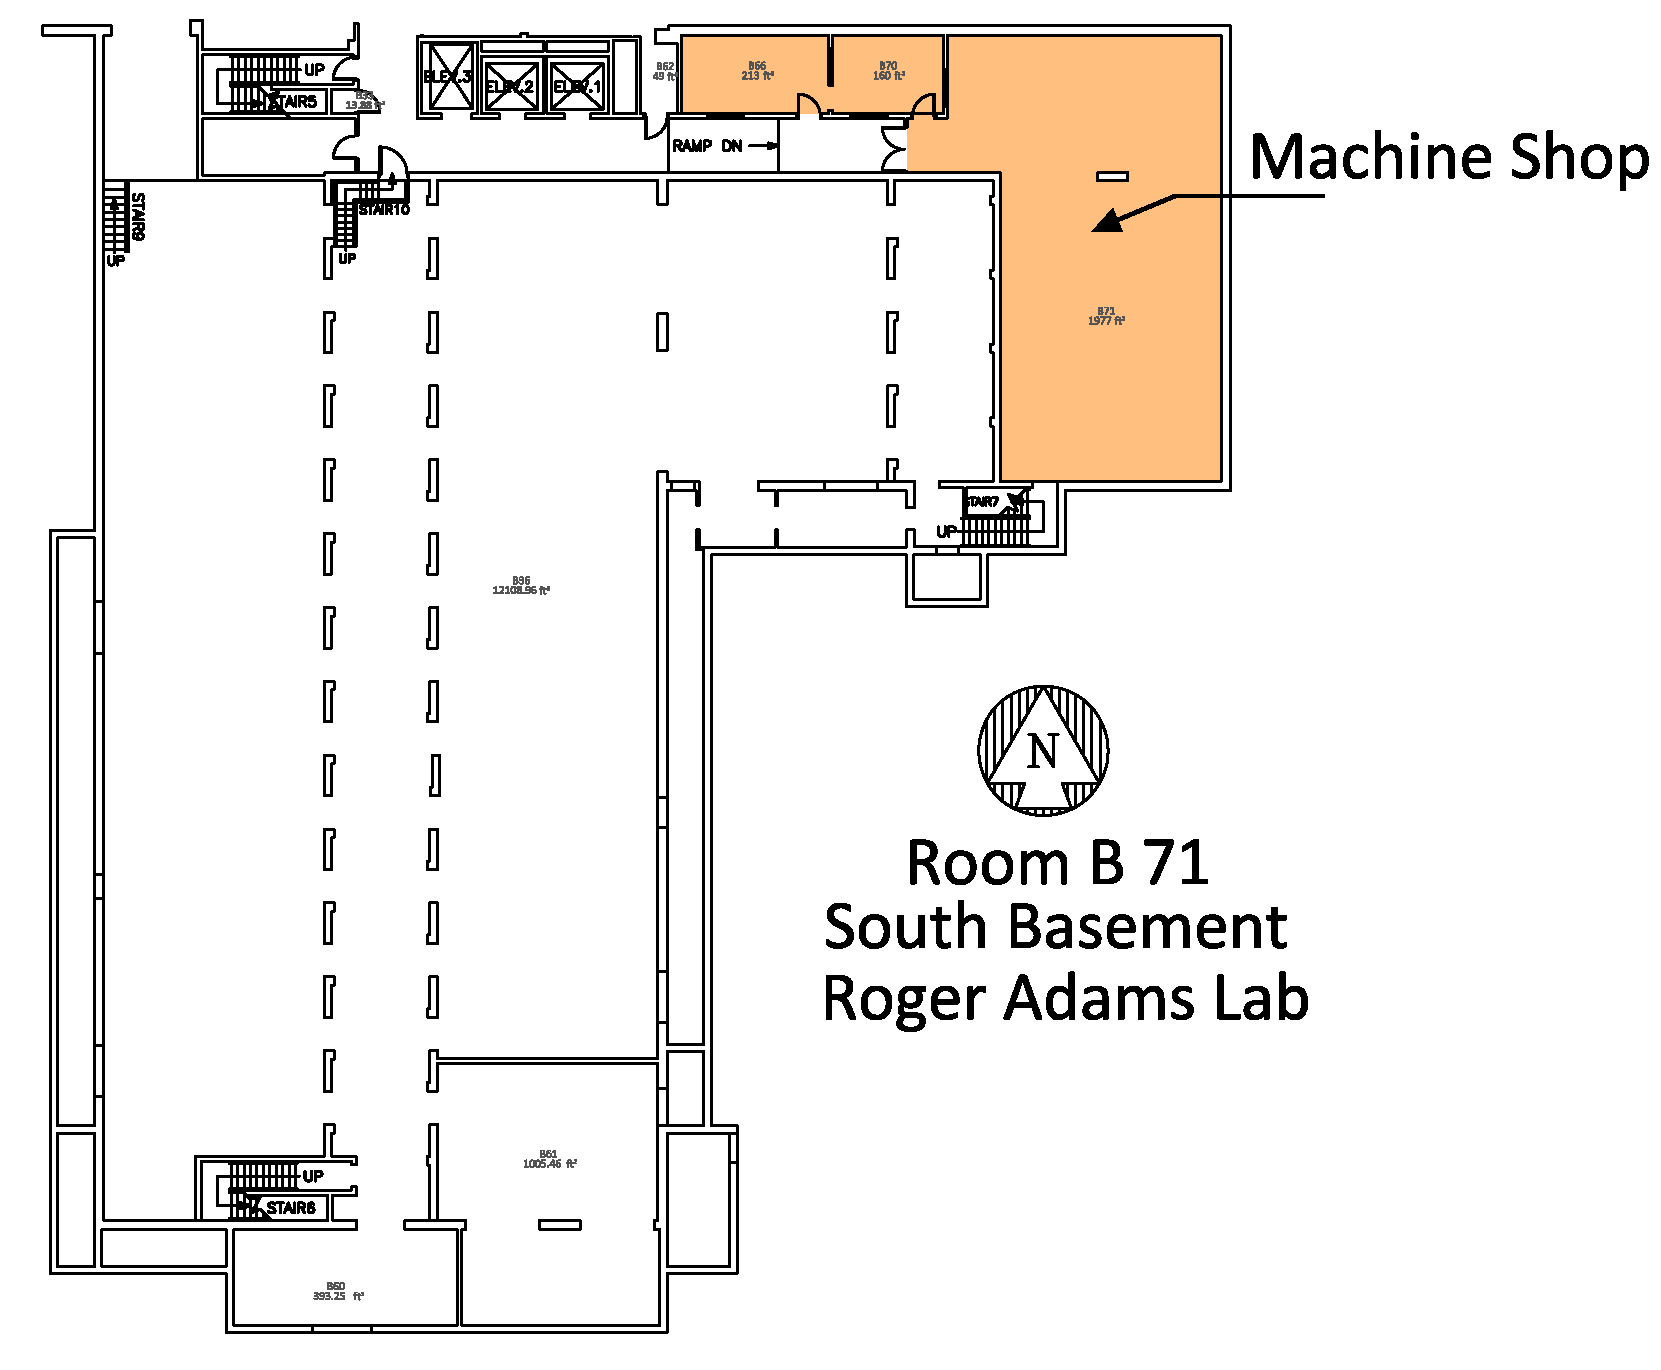 Machine shop location